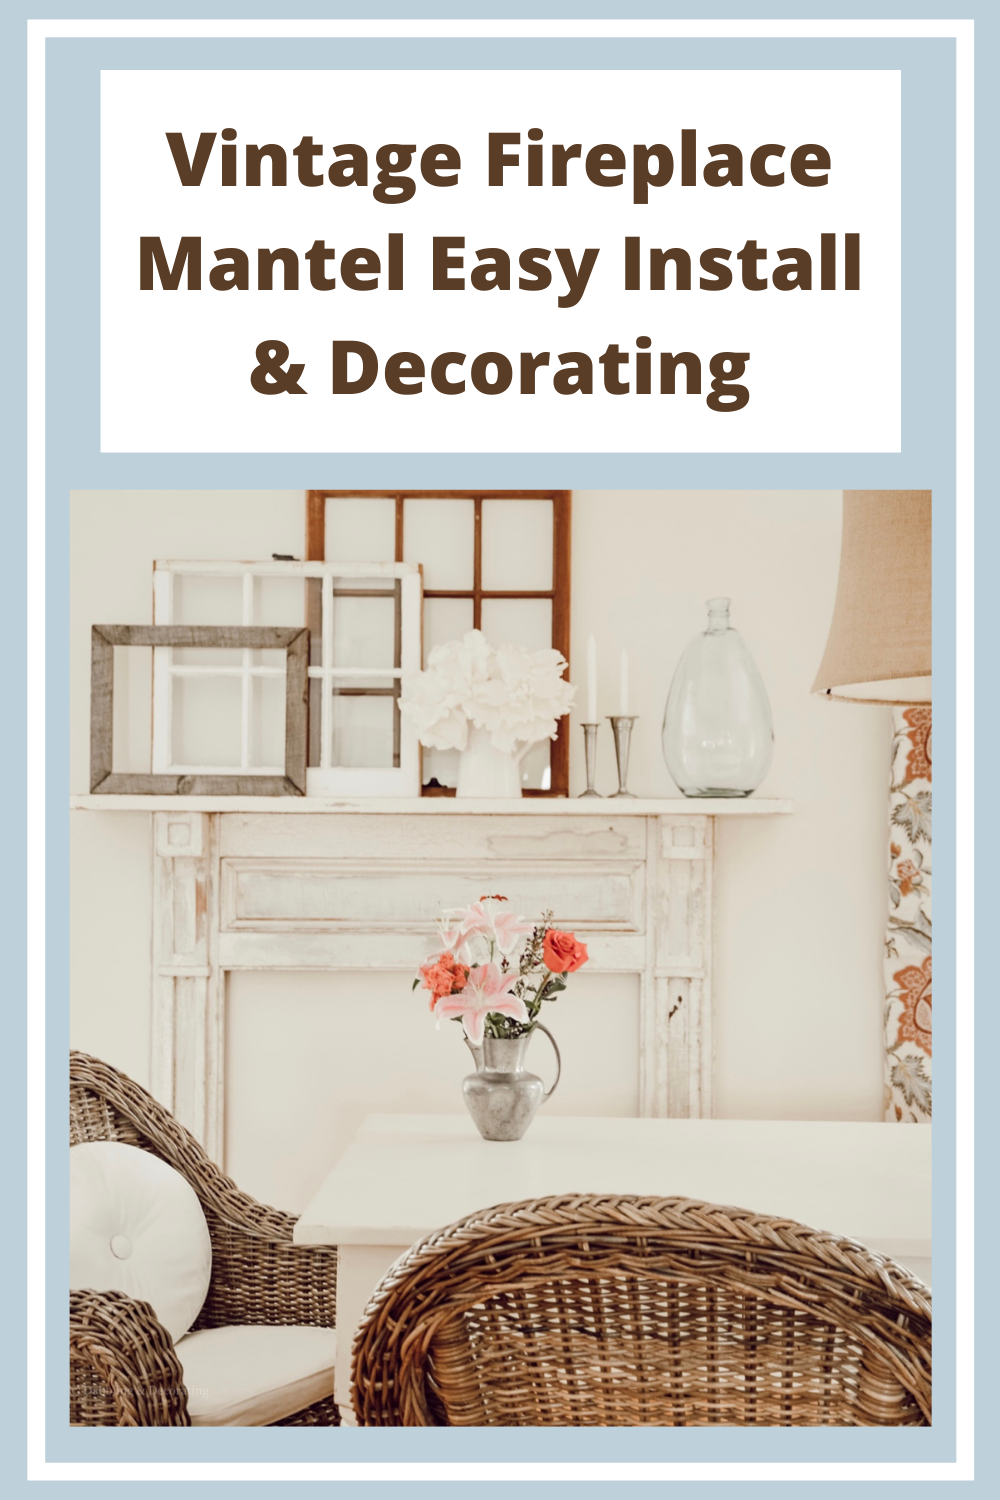 Vintage Fireplace Mantel Easy Install & Decorating